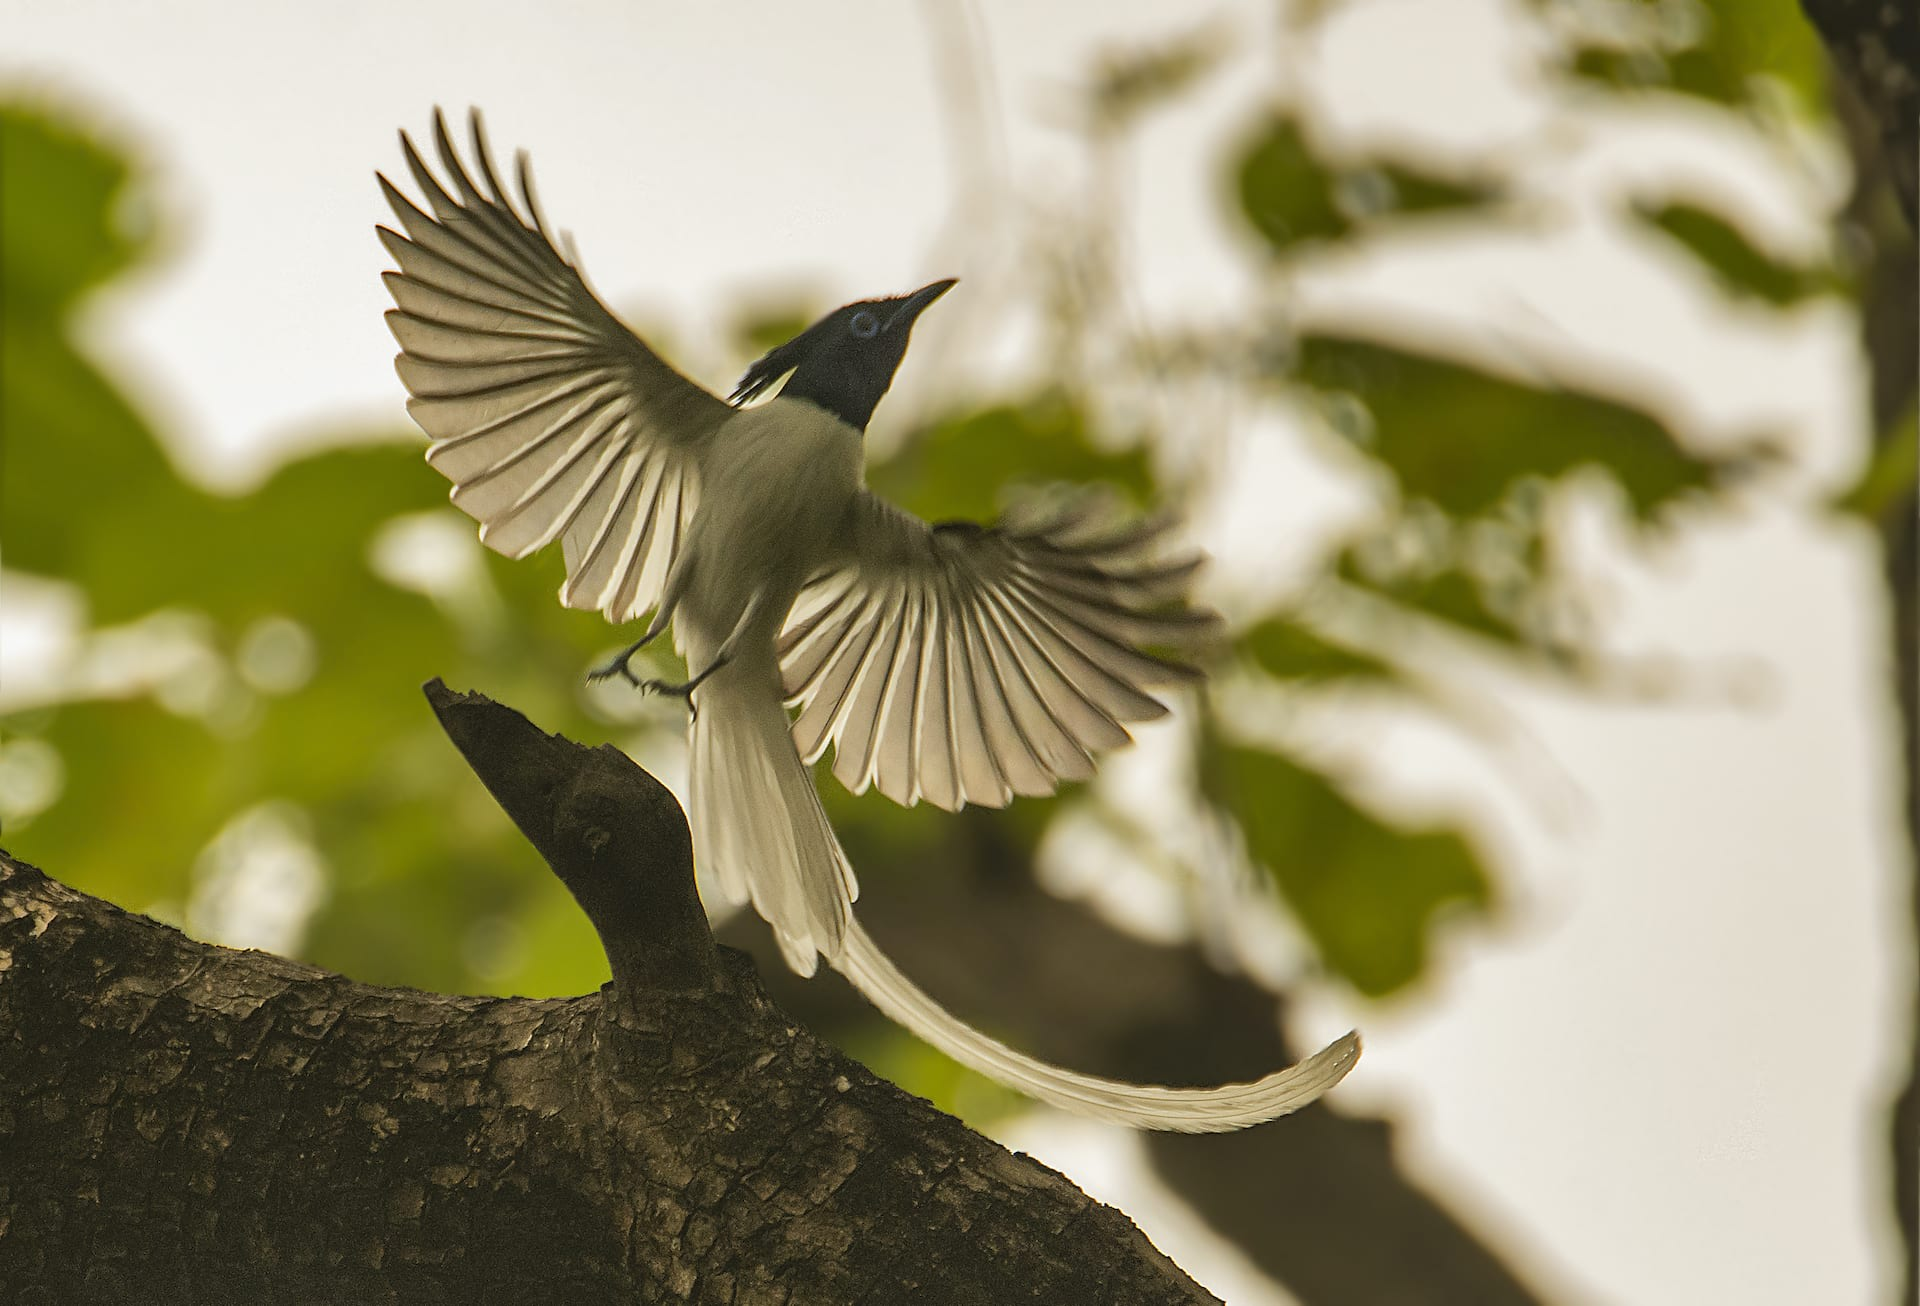 One is most likely to spot this enchanting bird, that seems to have stepped right out of a fairy tale, in wooded areas.